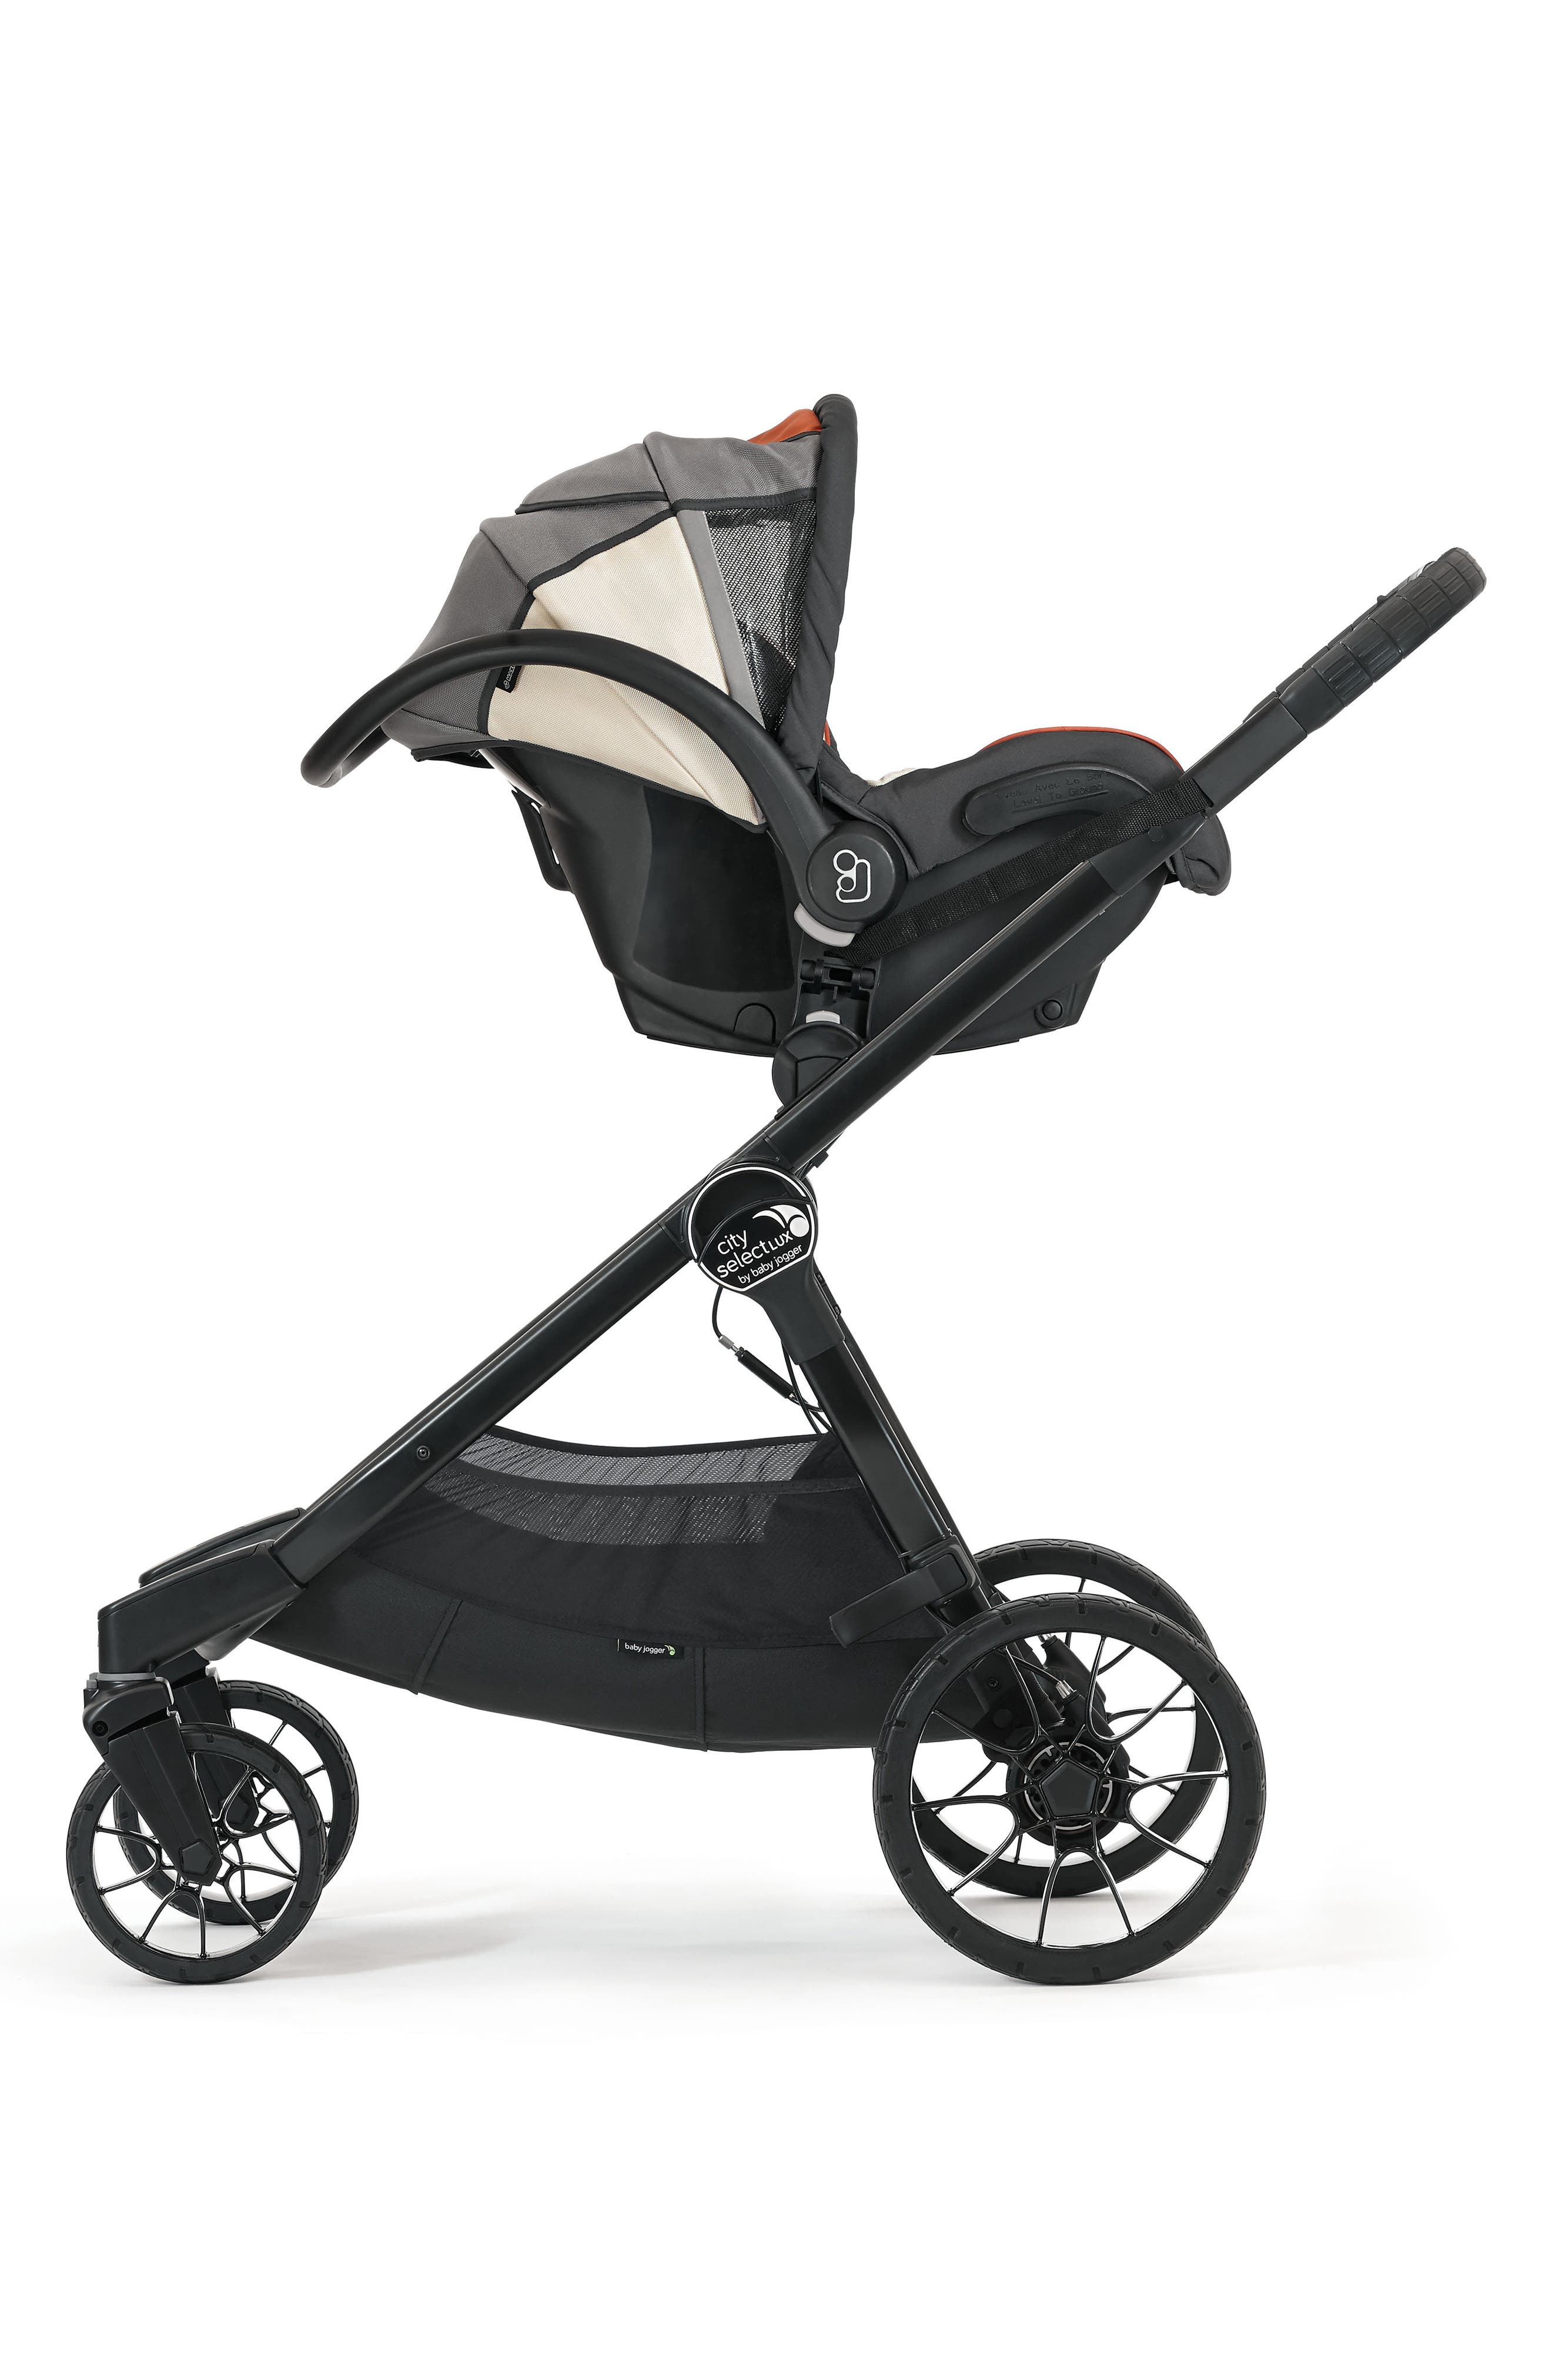 Baby Jogger City Select®/City Premier® Stroller to Cybex & Maxi-Cosi® Car Seat Adapter